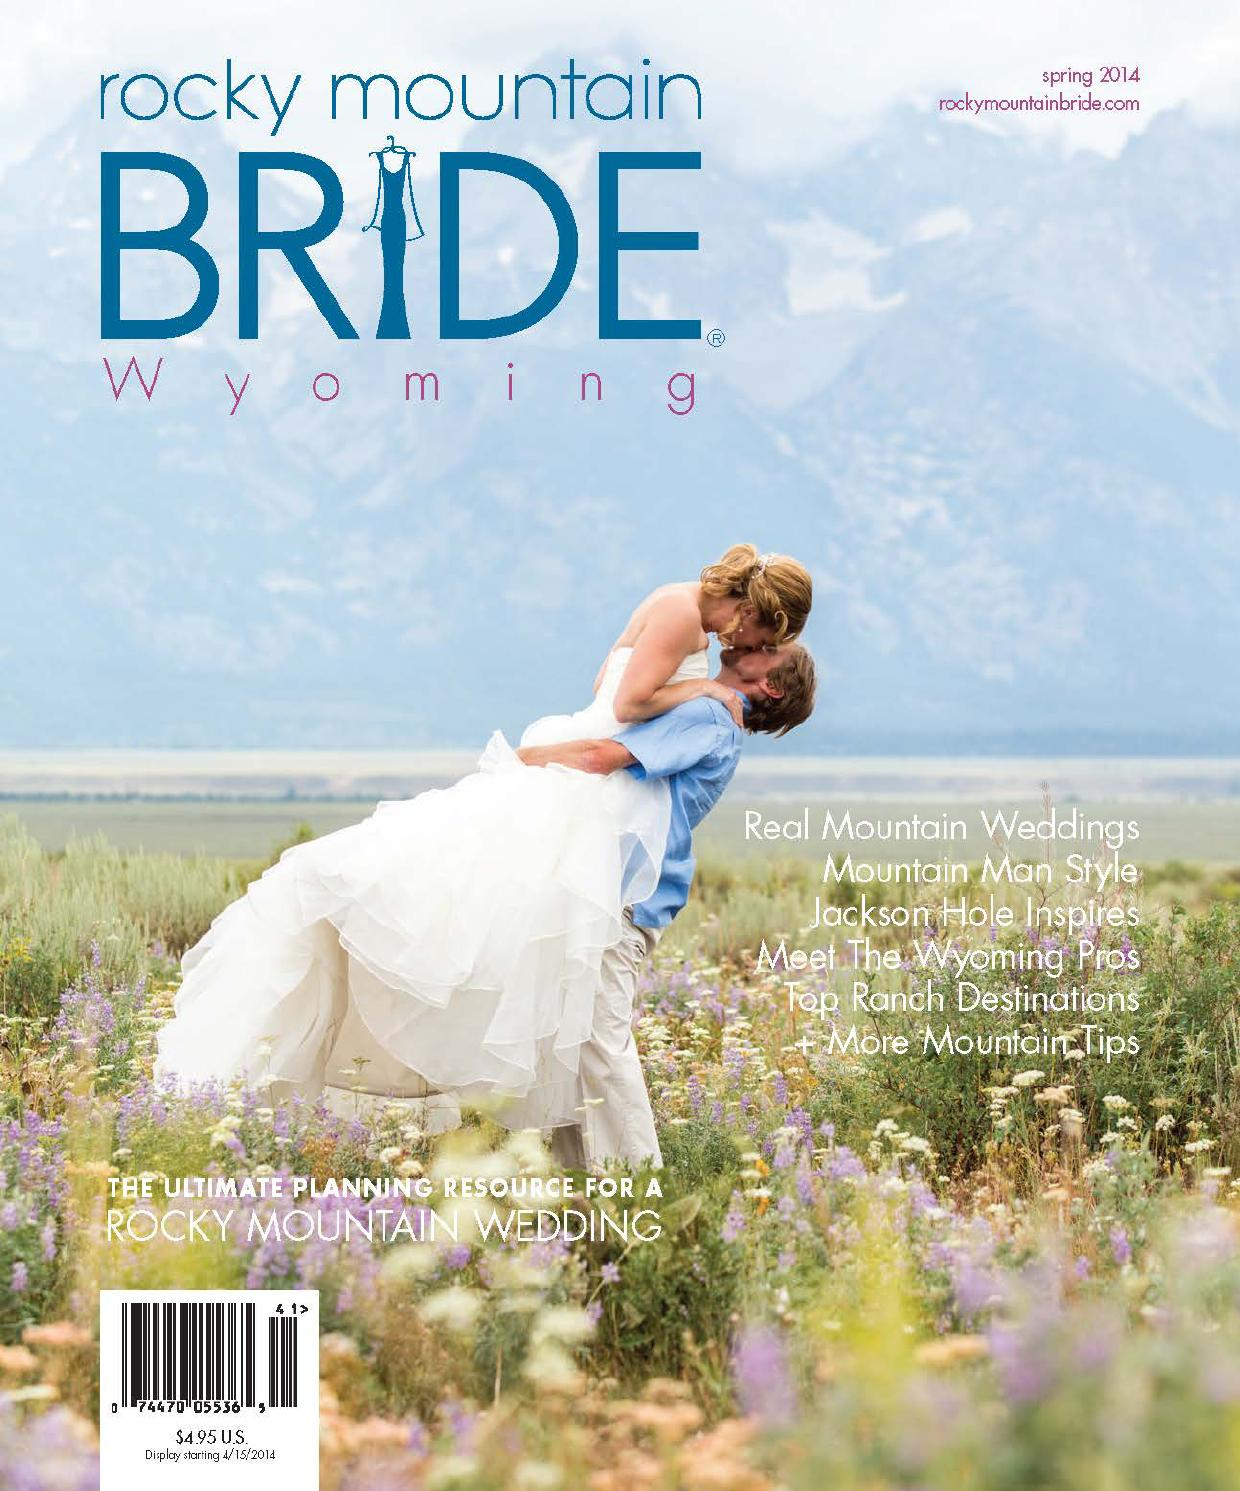 Redemption of the bride. Contests and tasks